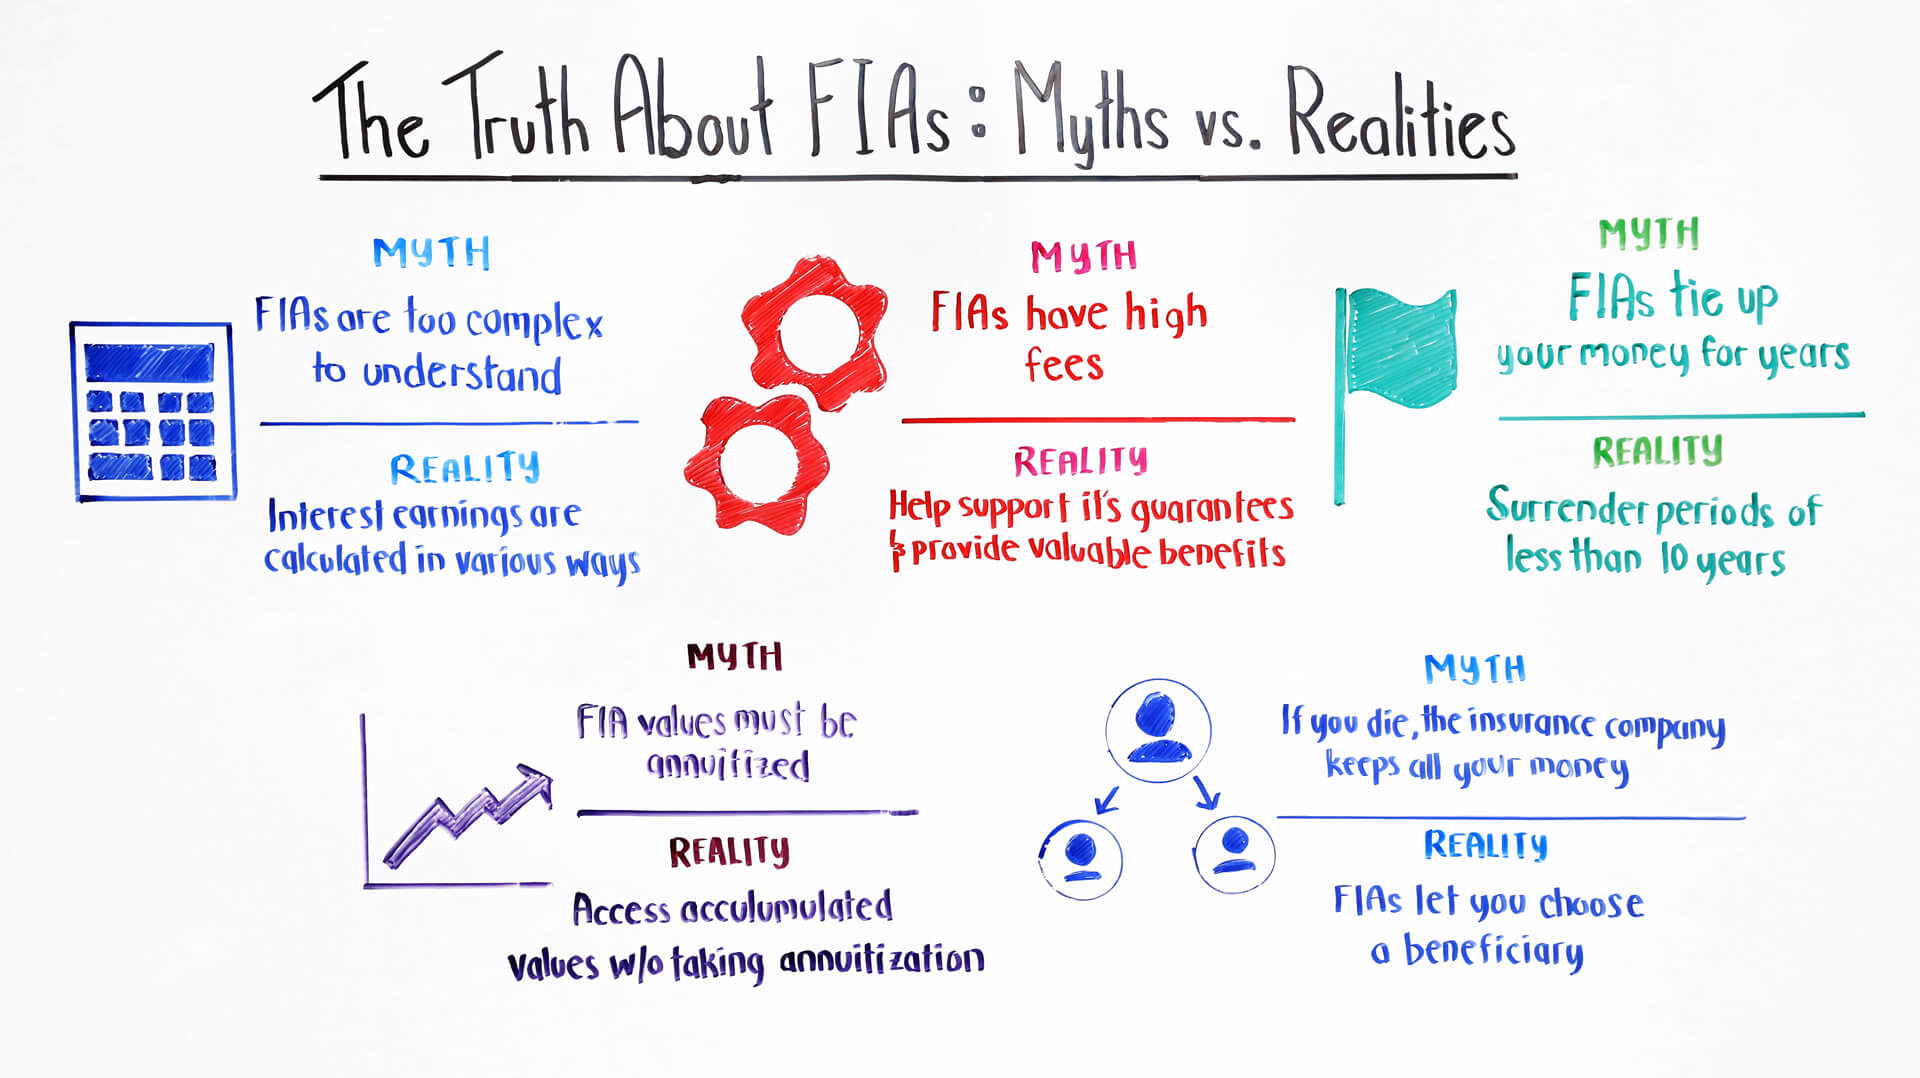 the truth about fias myths vs realities